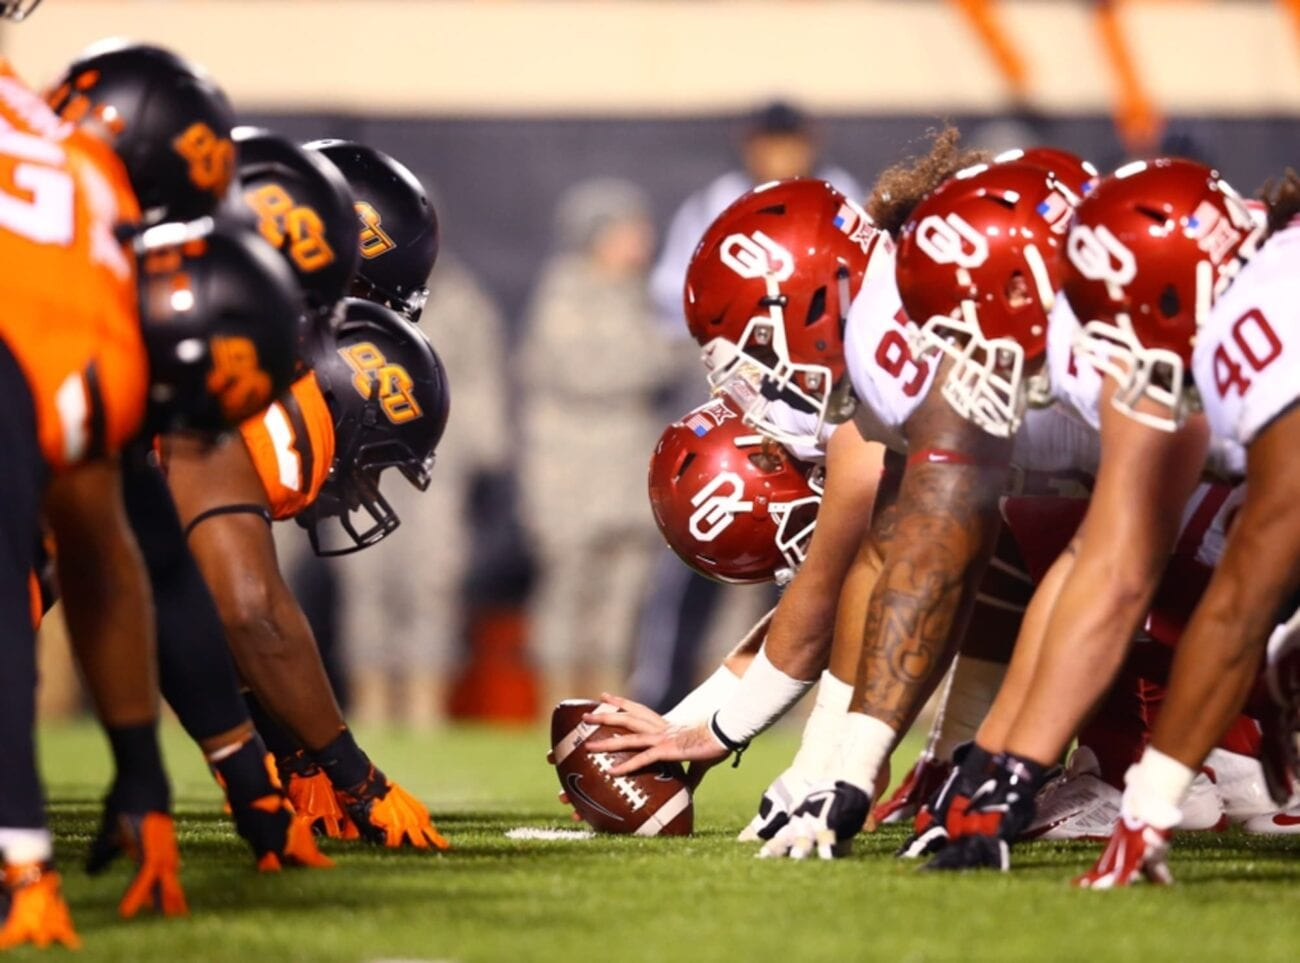 Oklahoma and Oklahoma State are facing off once again tonight in some good ol' fashion football. Here's where you can stream the game.